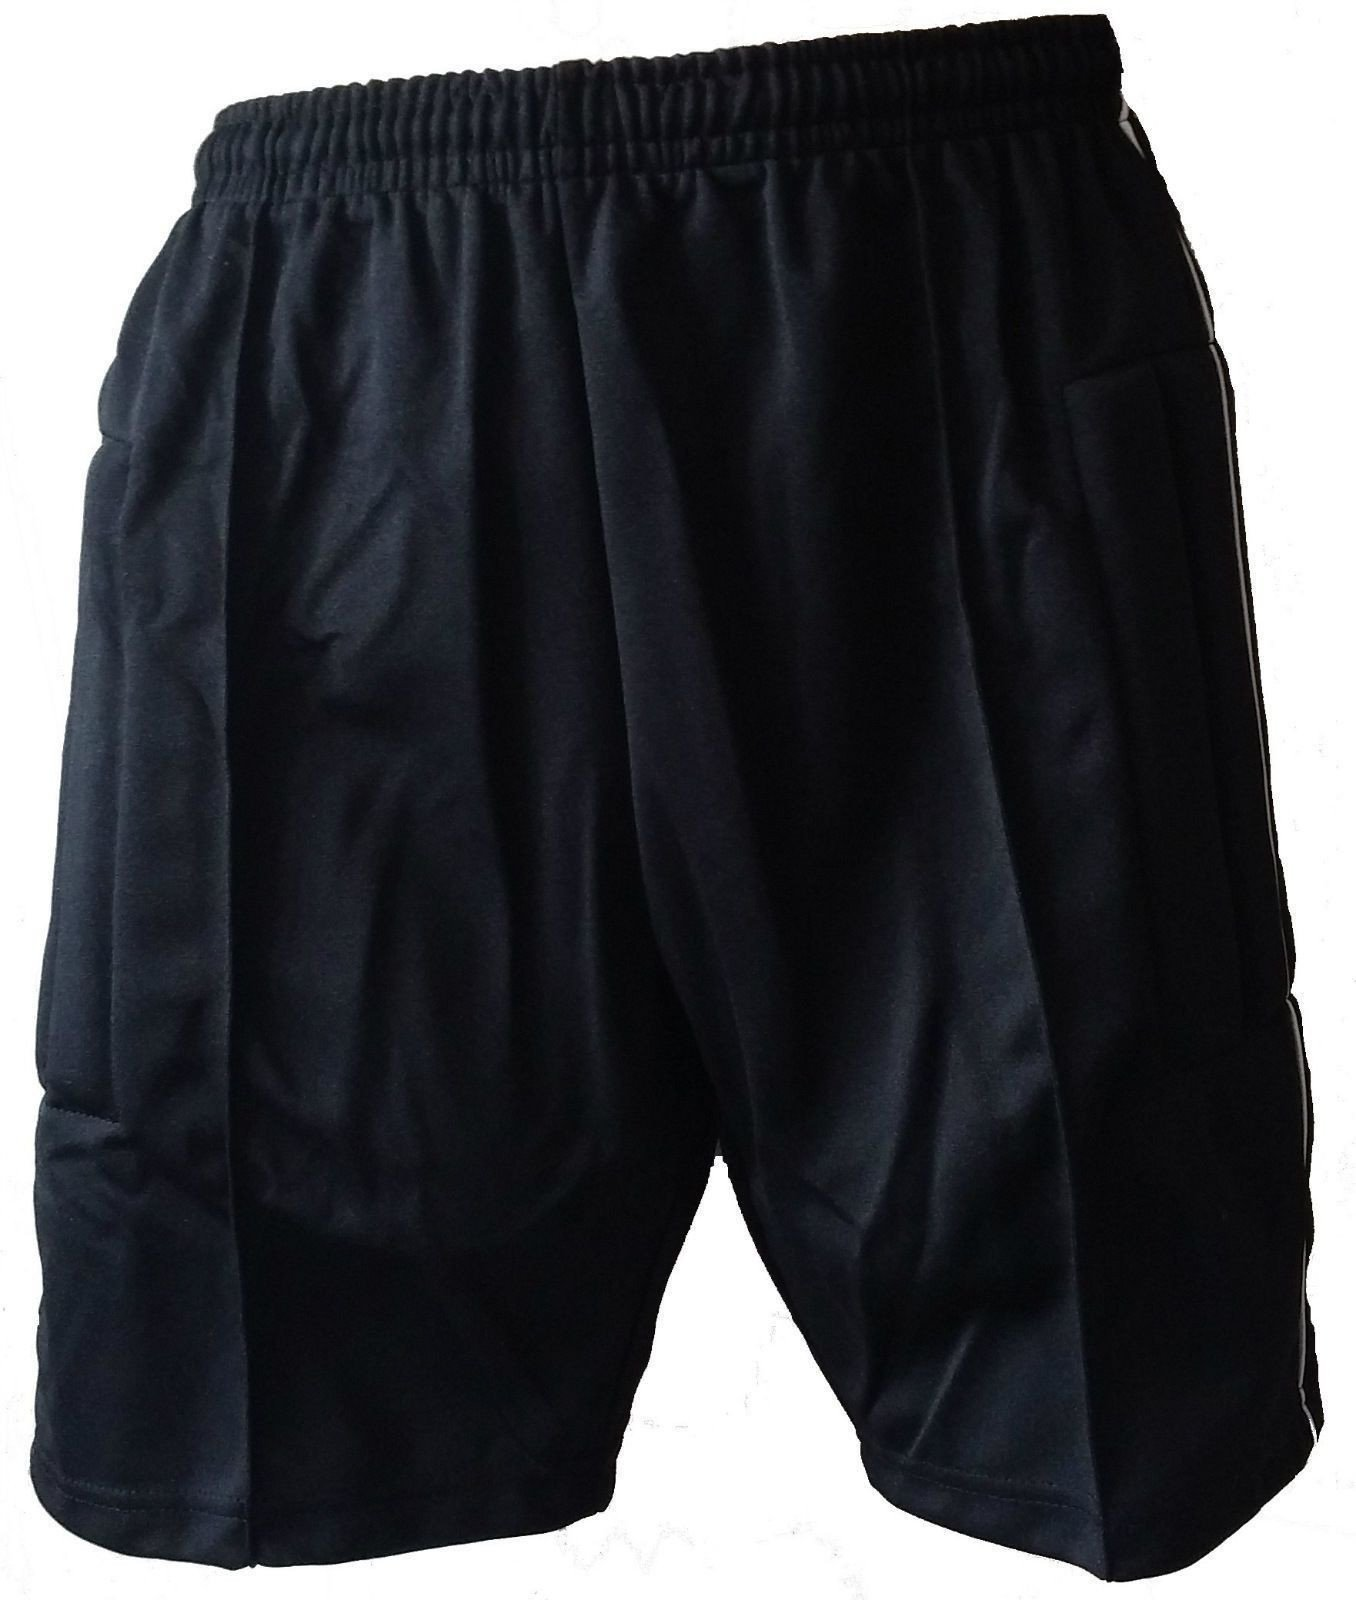 CNT Soccer Goalkeeper Shorts Padded Black Goalie AM by CNT